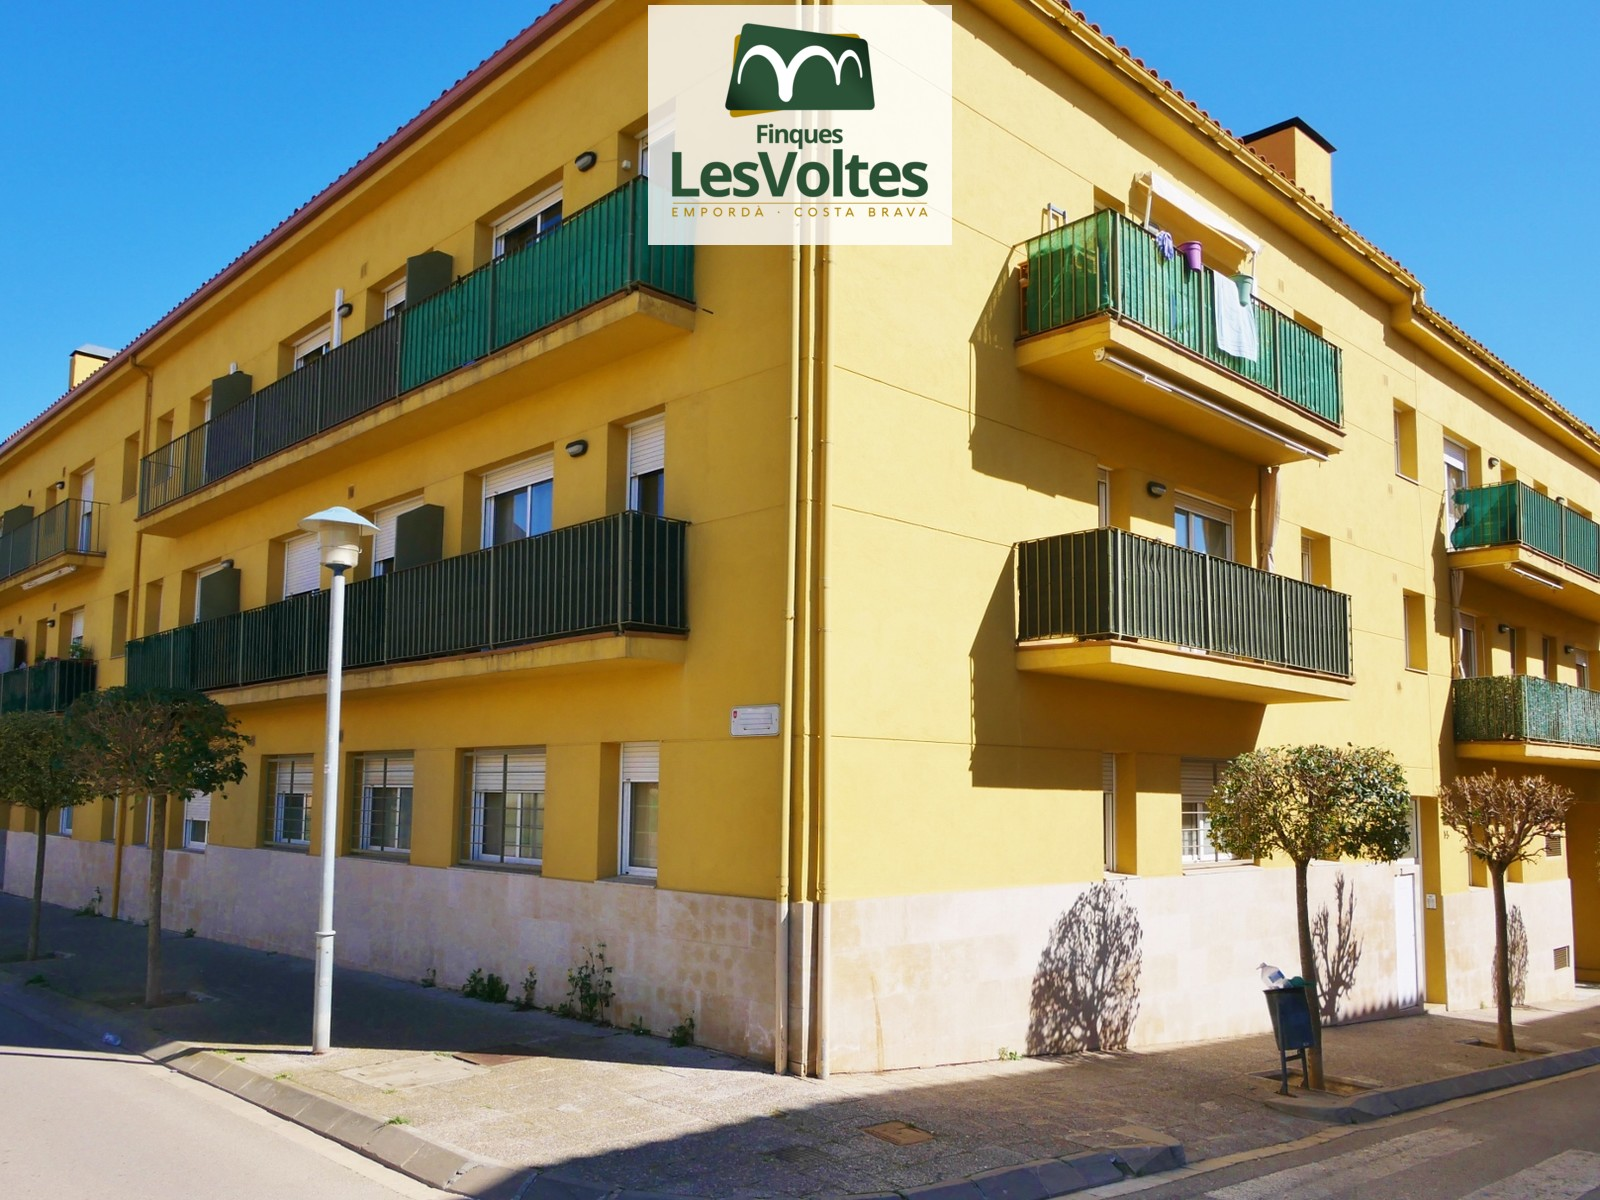 SPACIOUS NEW SEMI FLOOR WITH PARKING PLACE AND STORAGE ROOM FOR SALE IN PALAFRUGELL. COMMUNITY WITH ELEVATOR.